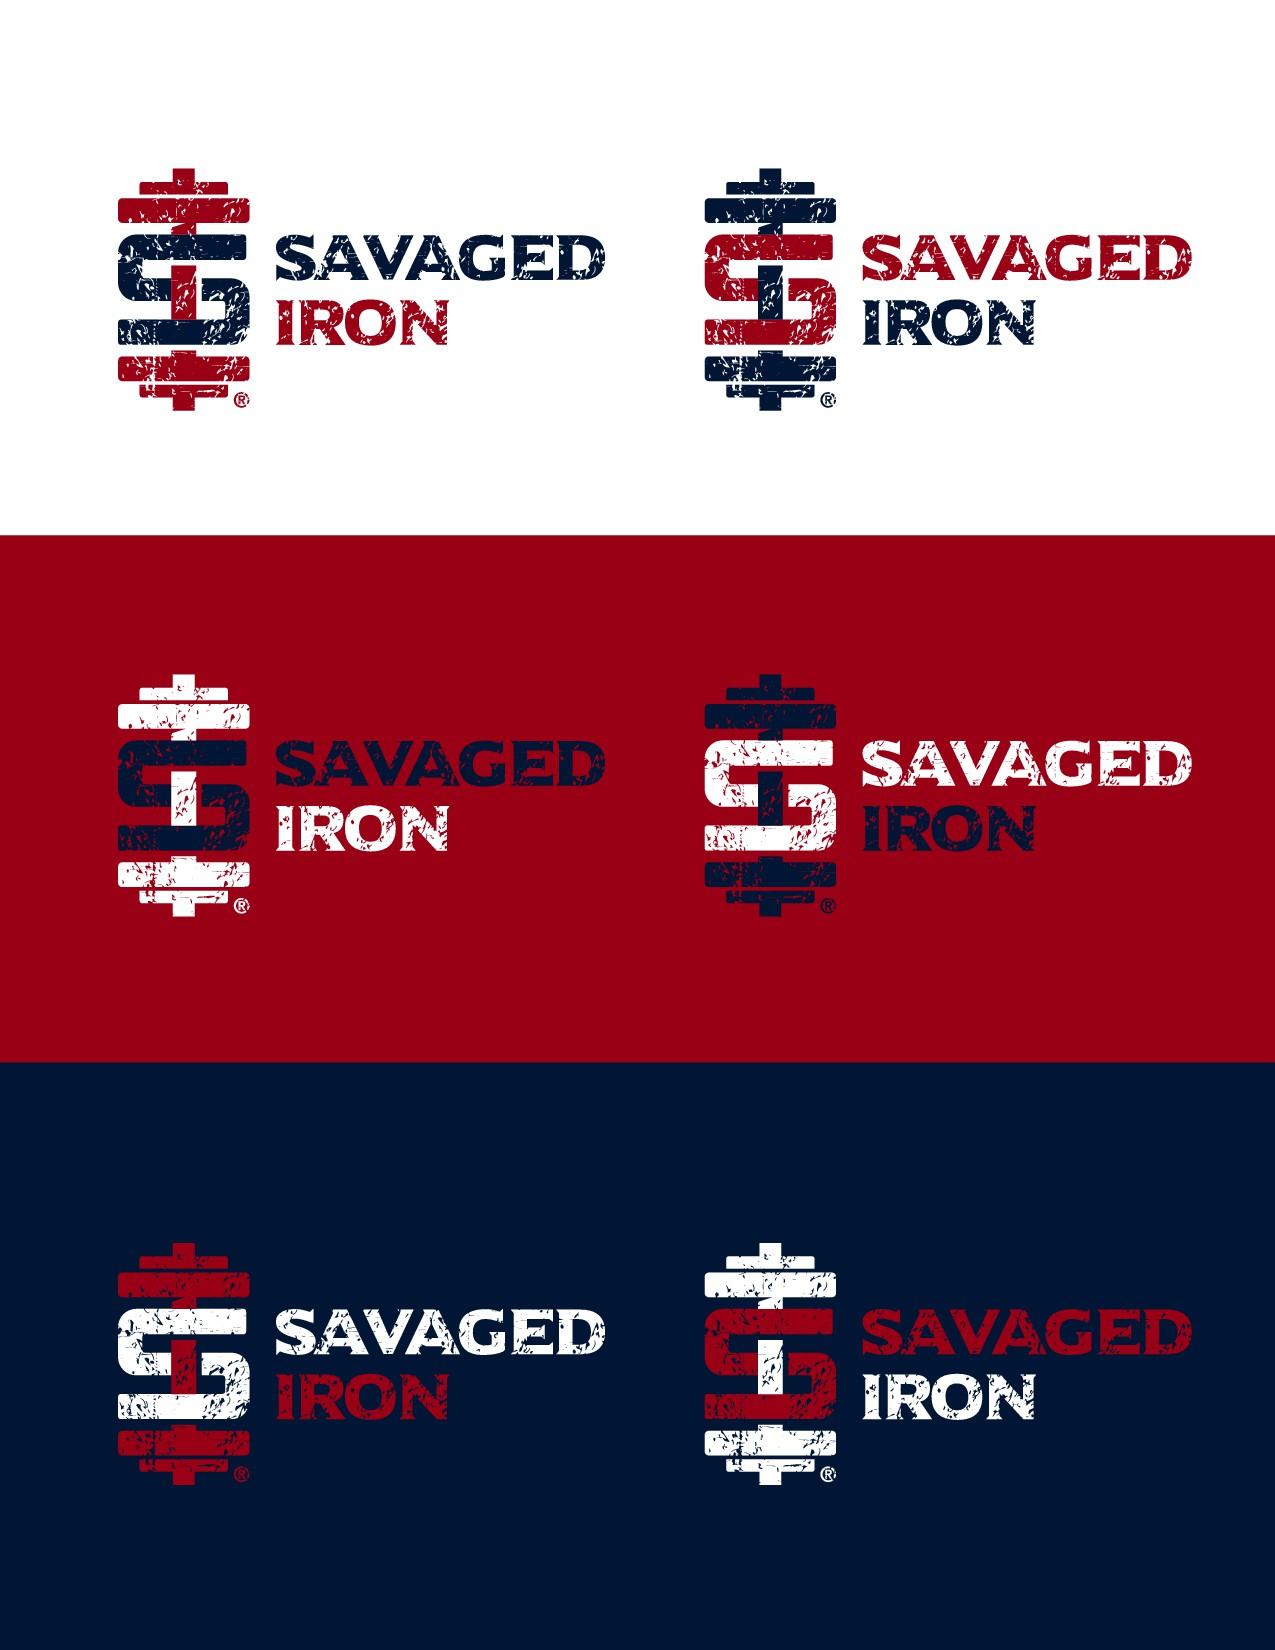 Savaged Iron requires edgy & eye catching  illustration for a hardcore fitness and lifestyle company